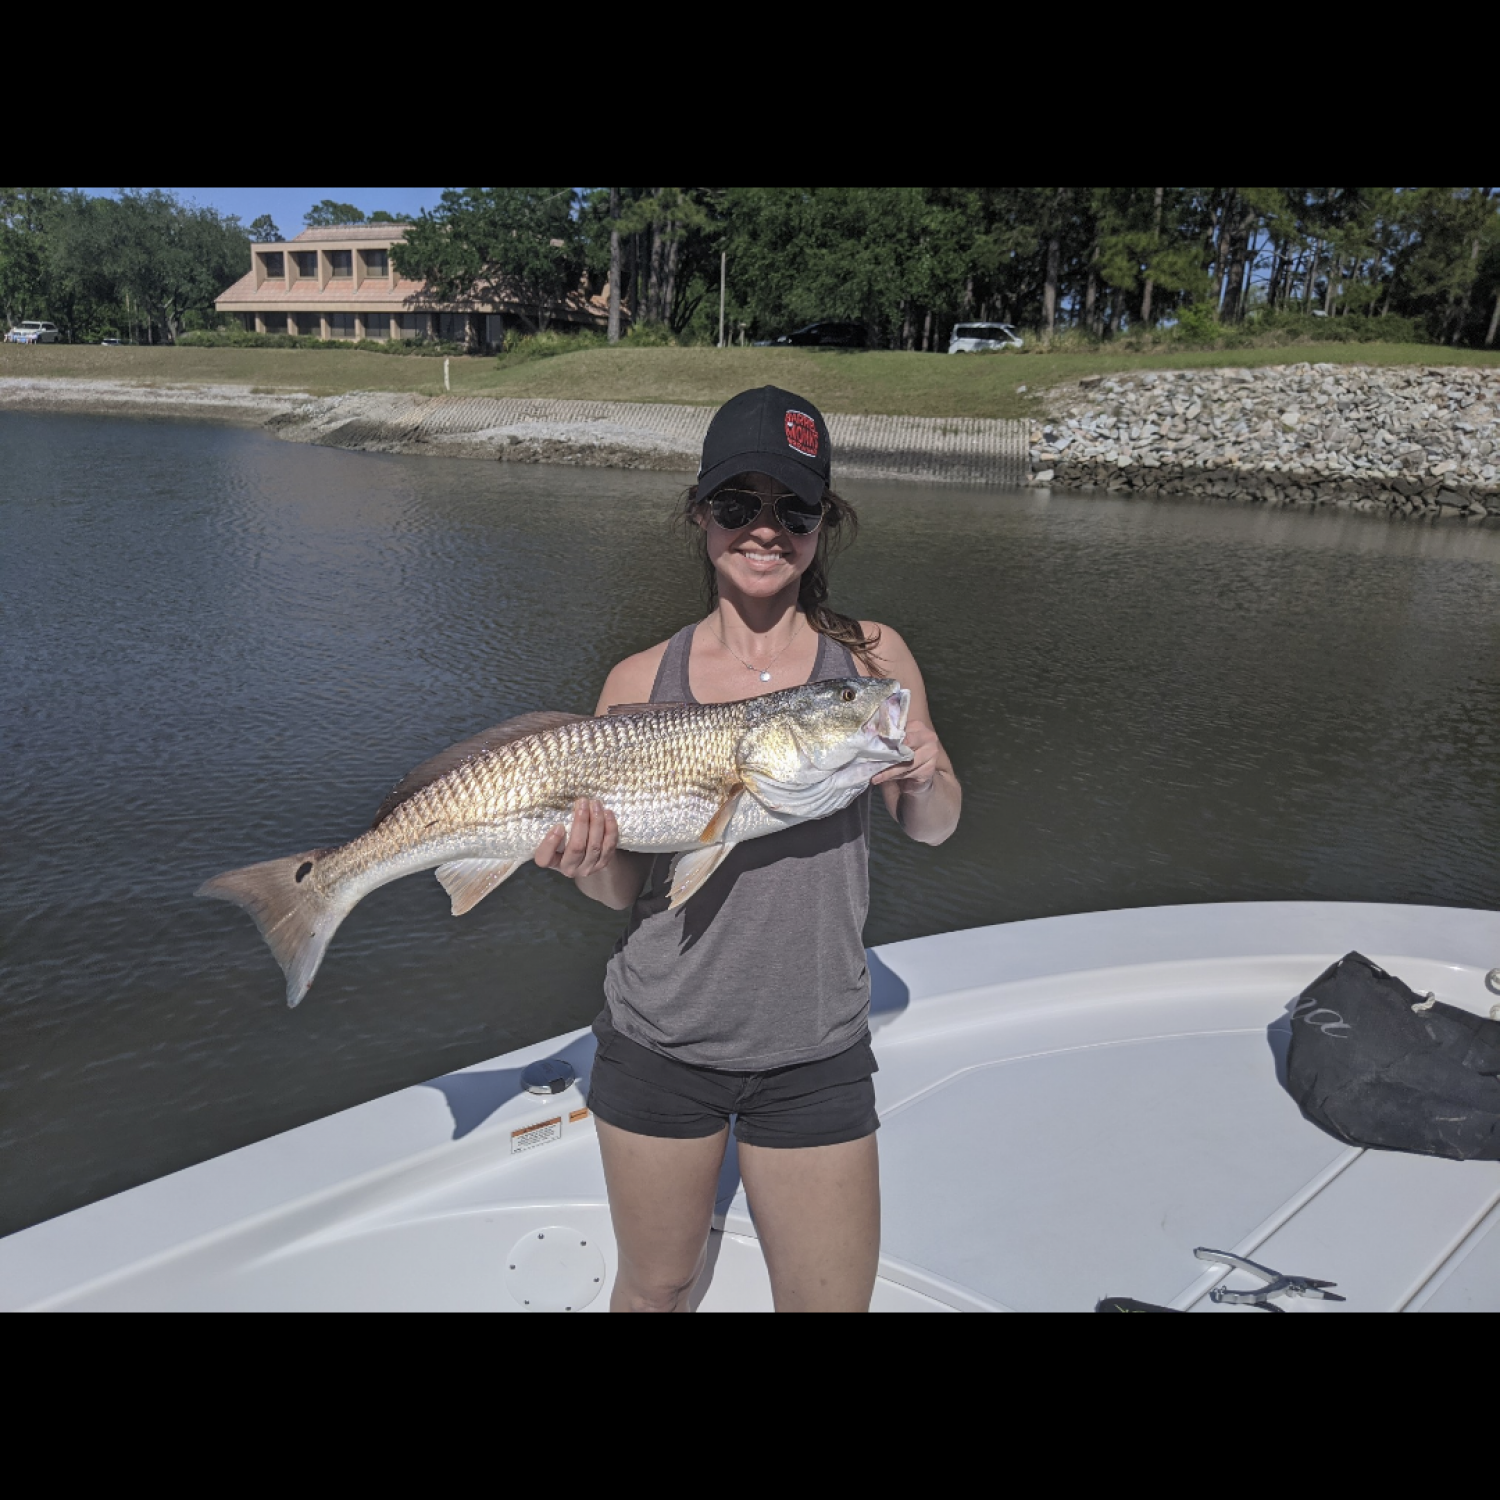 Title: Catchin Reds - On board their Sportsman Island Bay 20 Bay Boat - Location: Bluffton, south Carolina. Participating in the Photo Contest #SportsmanMay2020